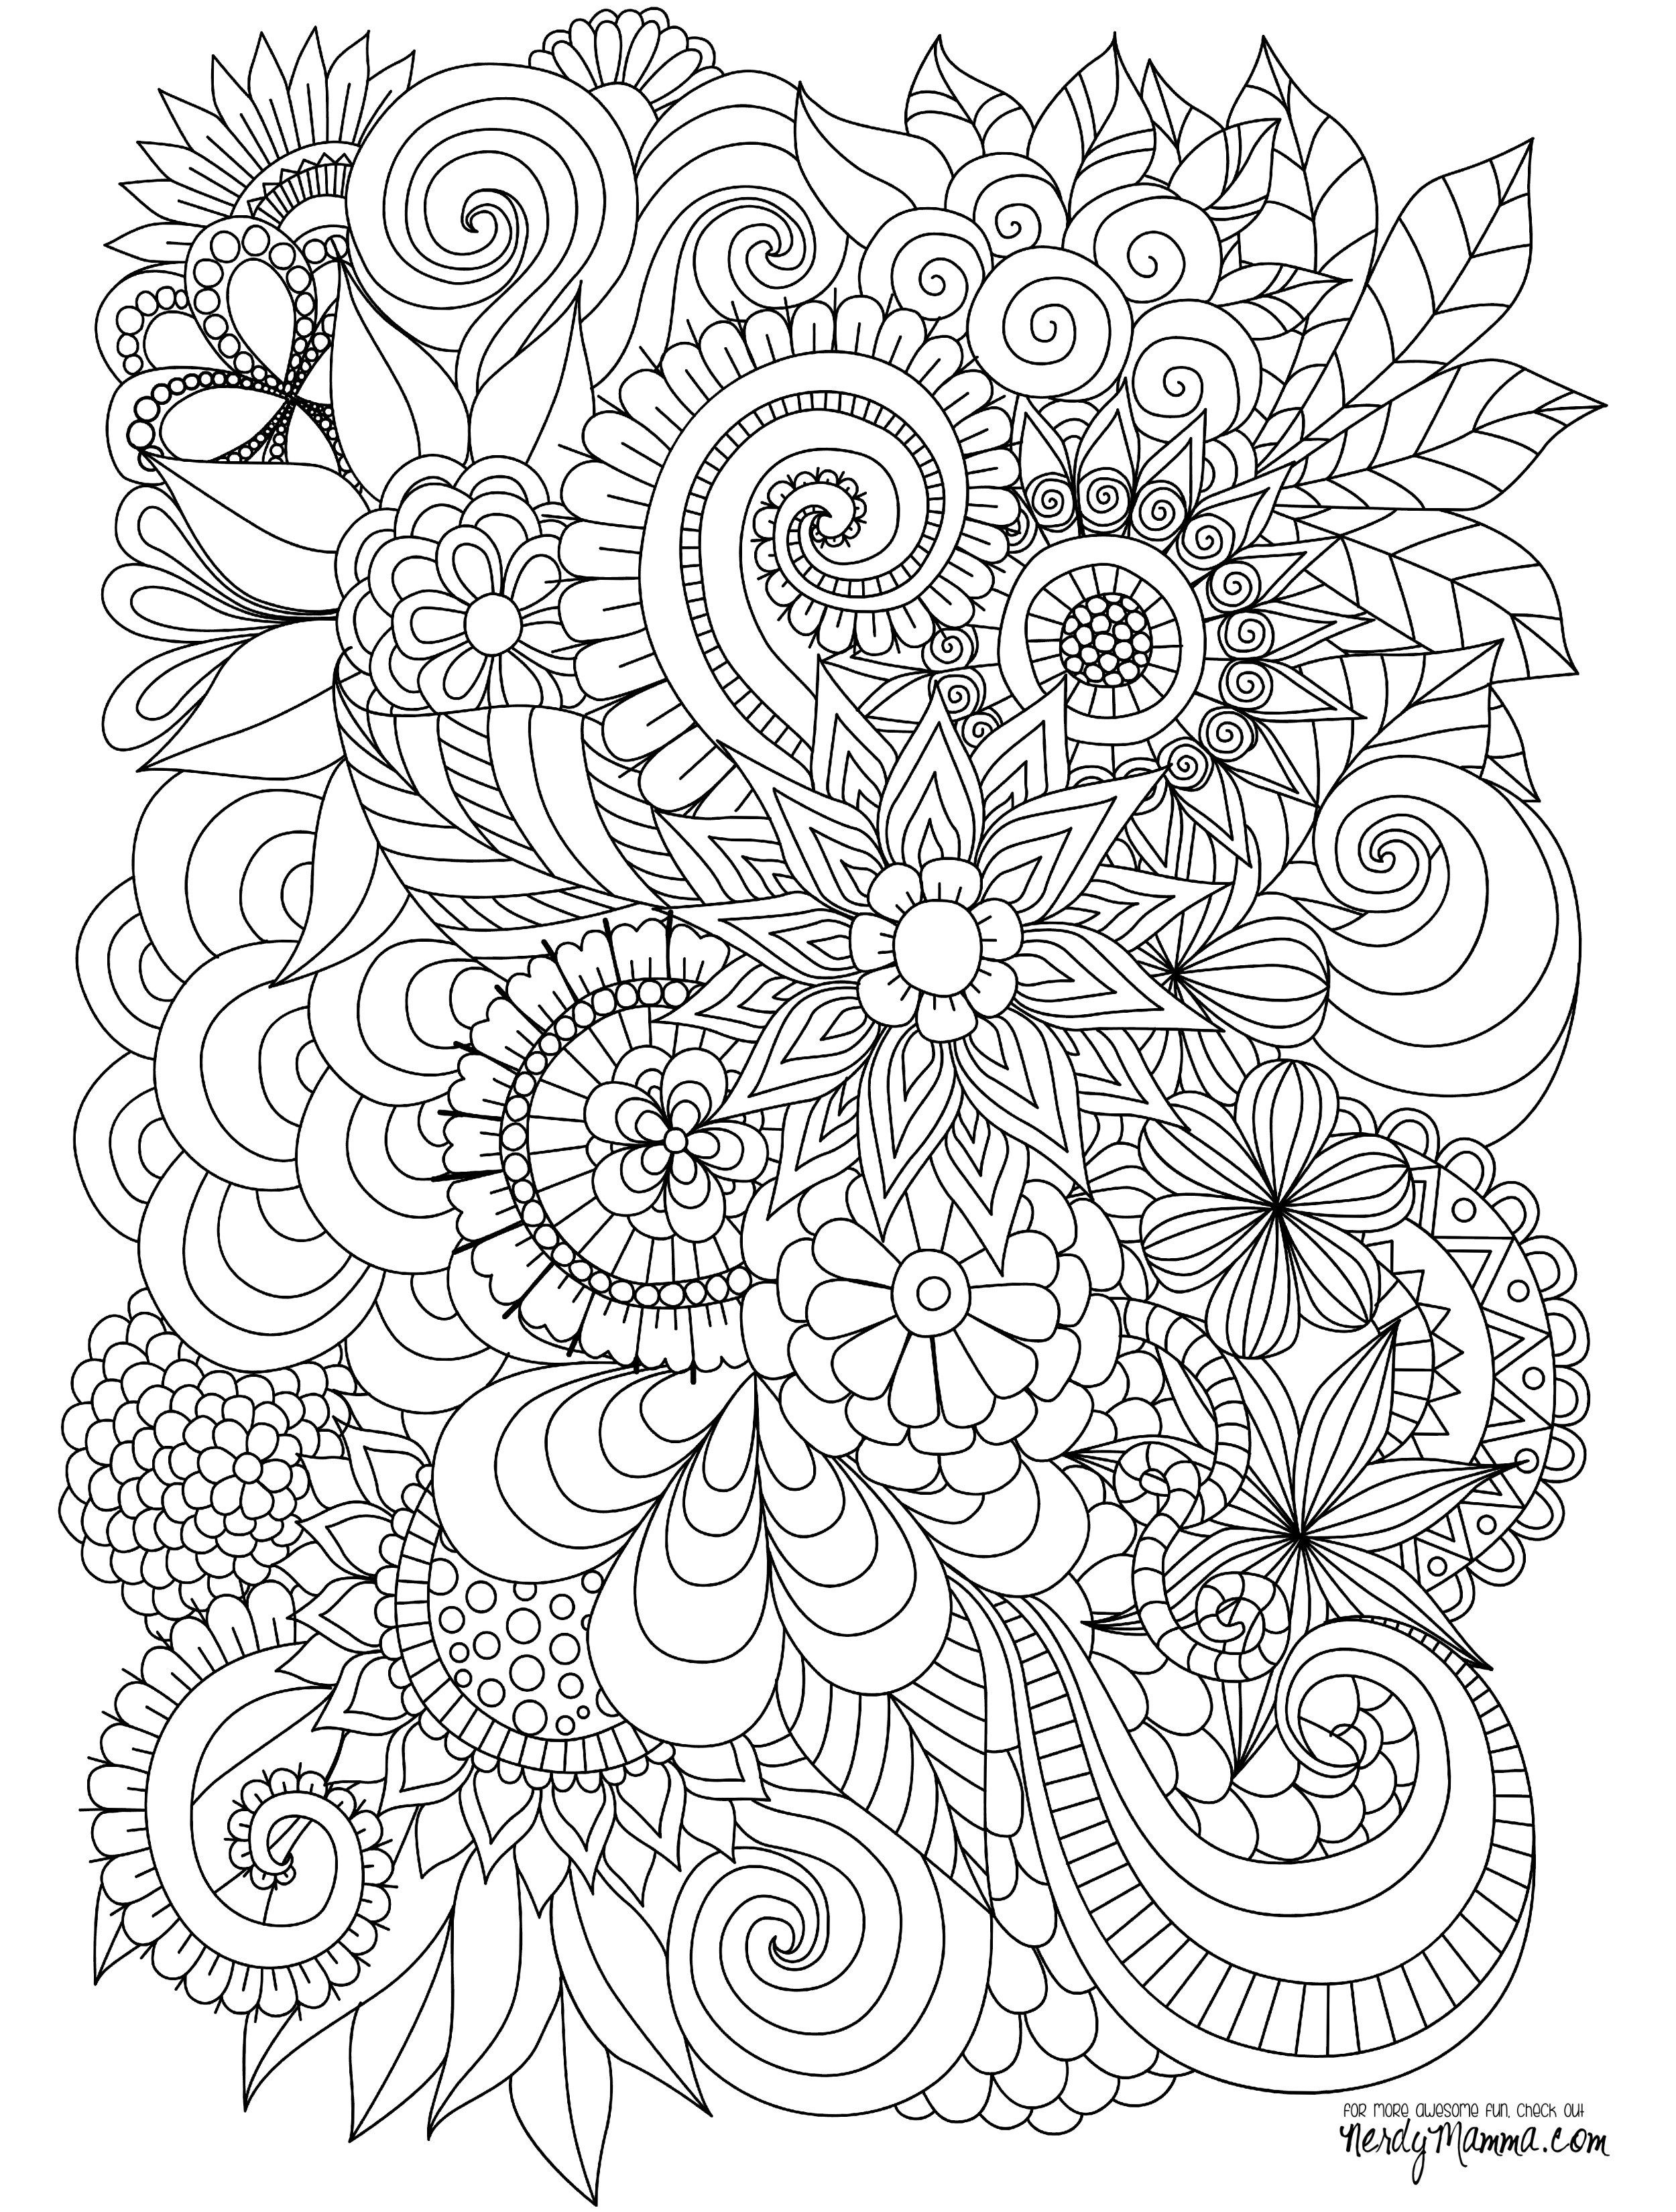 abstract owl coloring pages pin by jackie delalla on coloring pictures owl coloring abstract coloring pages owl